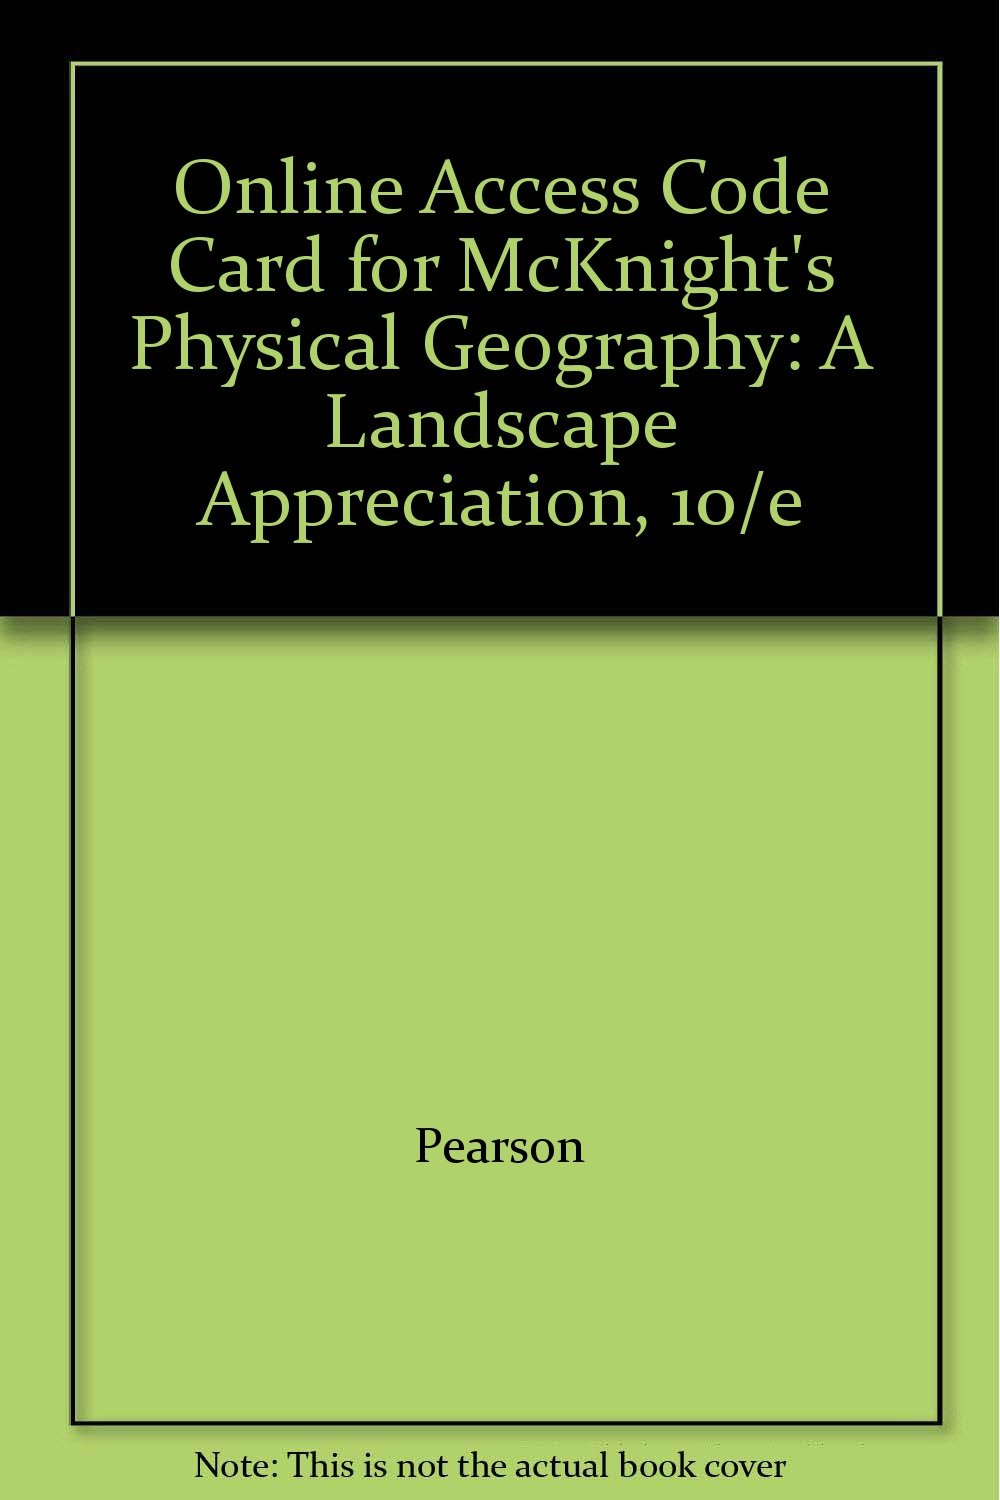 Download Online Access Code Card for McKnight's Physical Geography: A Landscape Appreciation, 10/e pdf epub